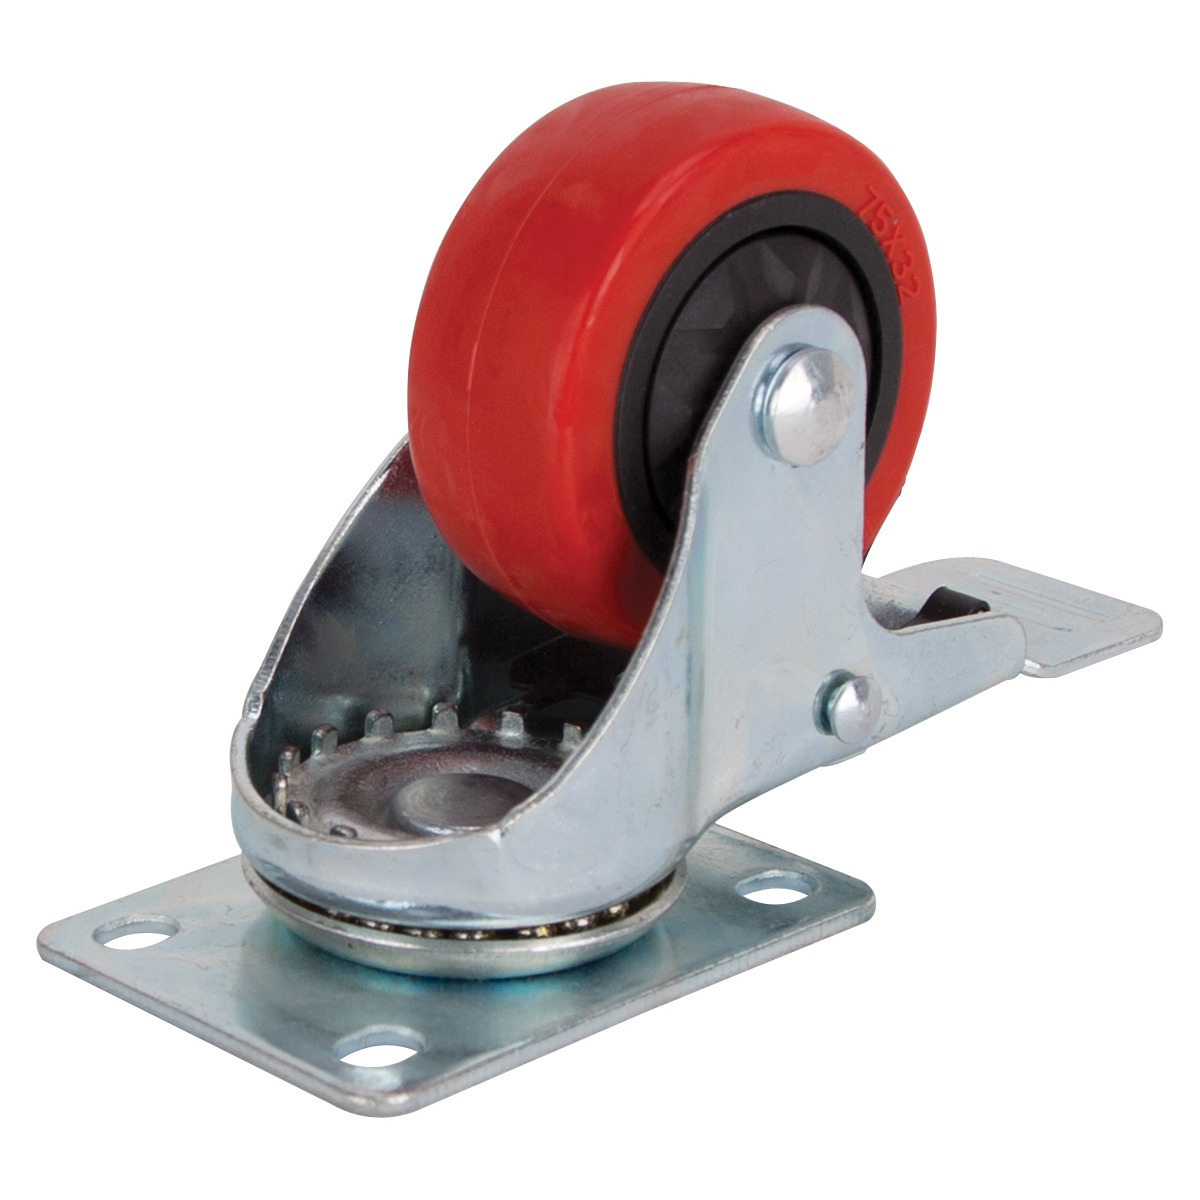 Picture of ProSource JC-386-G Swivel Caster with Brake, 3 in Dia Wheel, Polyurethane Wheel, Red, 176 lb